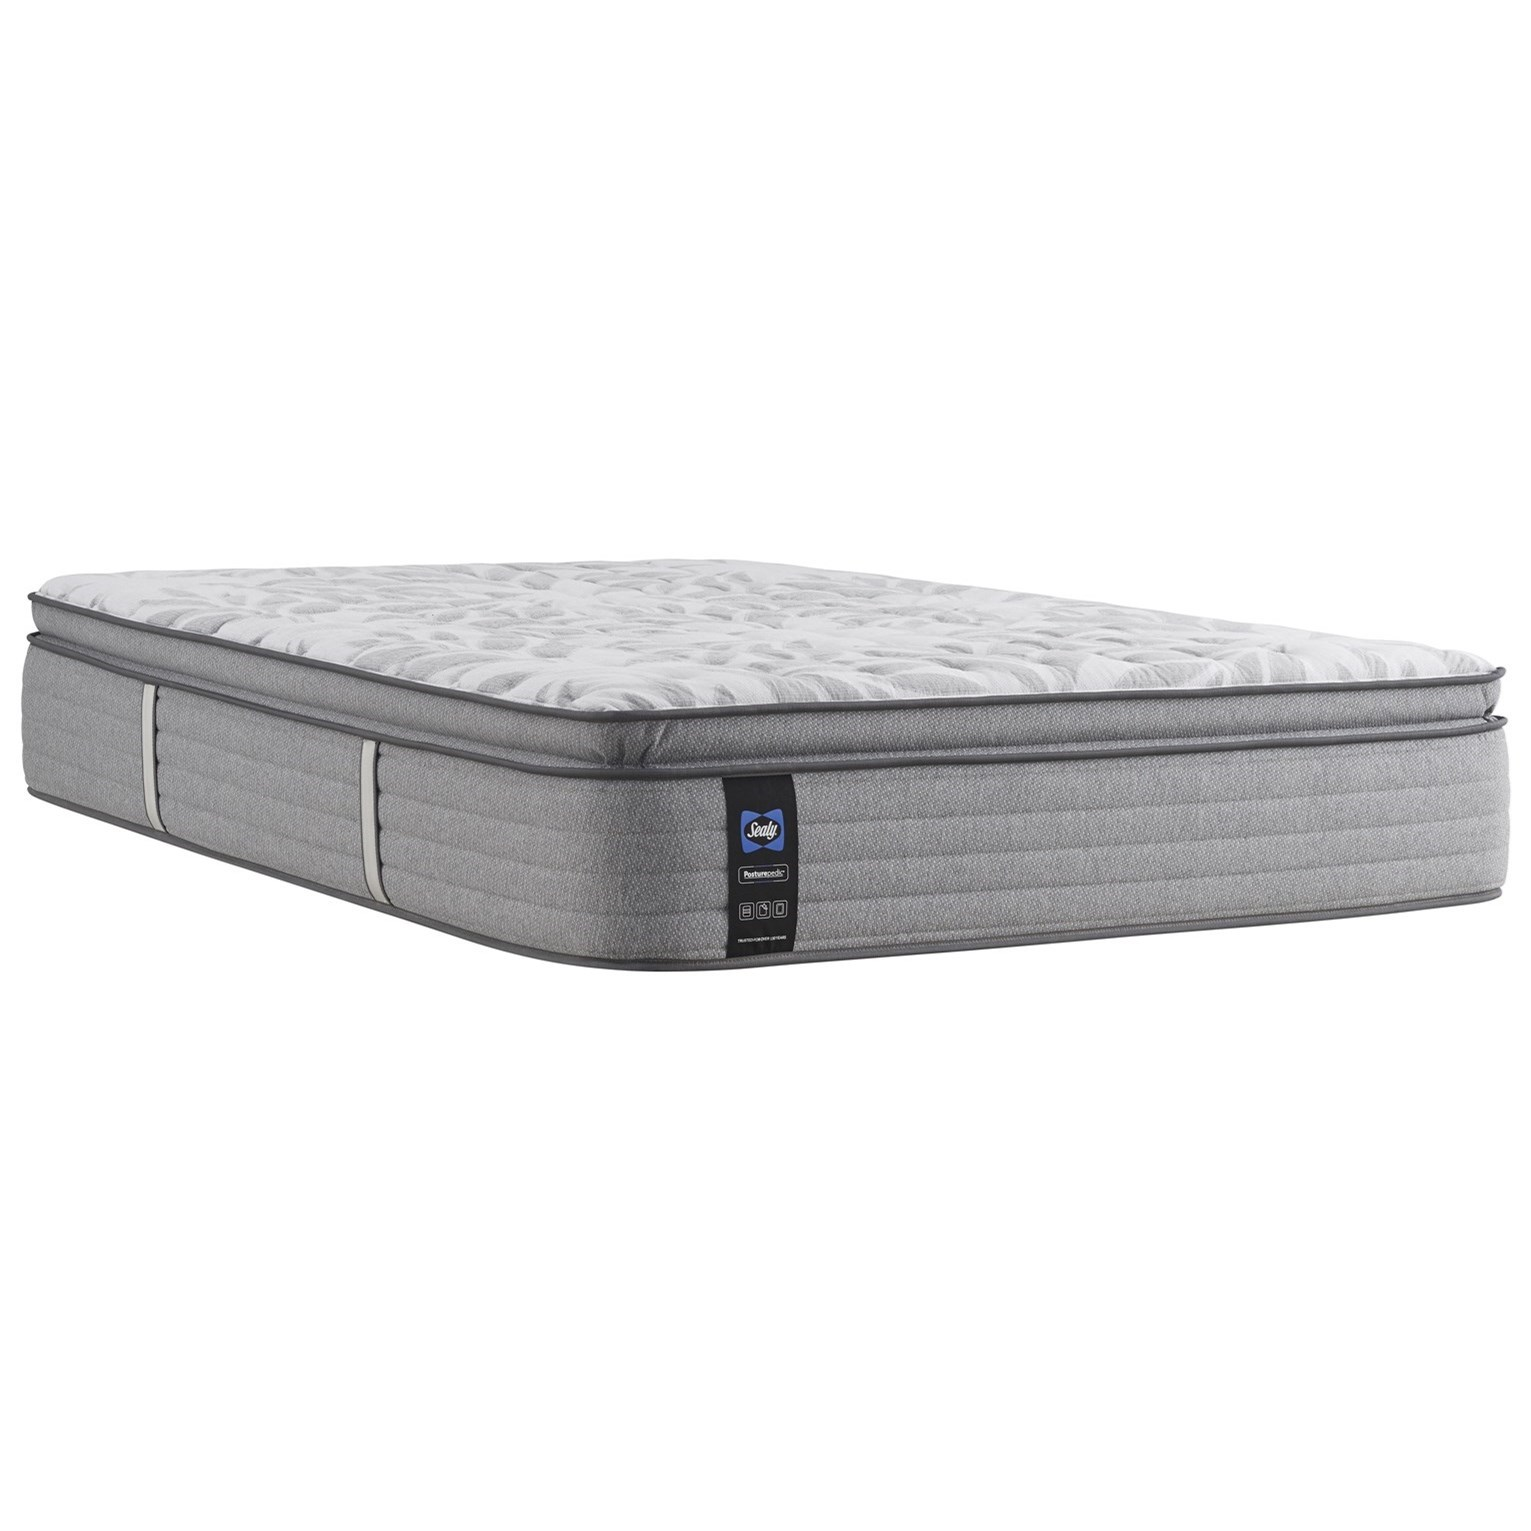 "PPS5 Posturpedic Innerspring Med EPT Queen 15"" Medium Euro Pillow Top Mattress by Sealy at Prime Brothers Furniture"